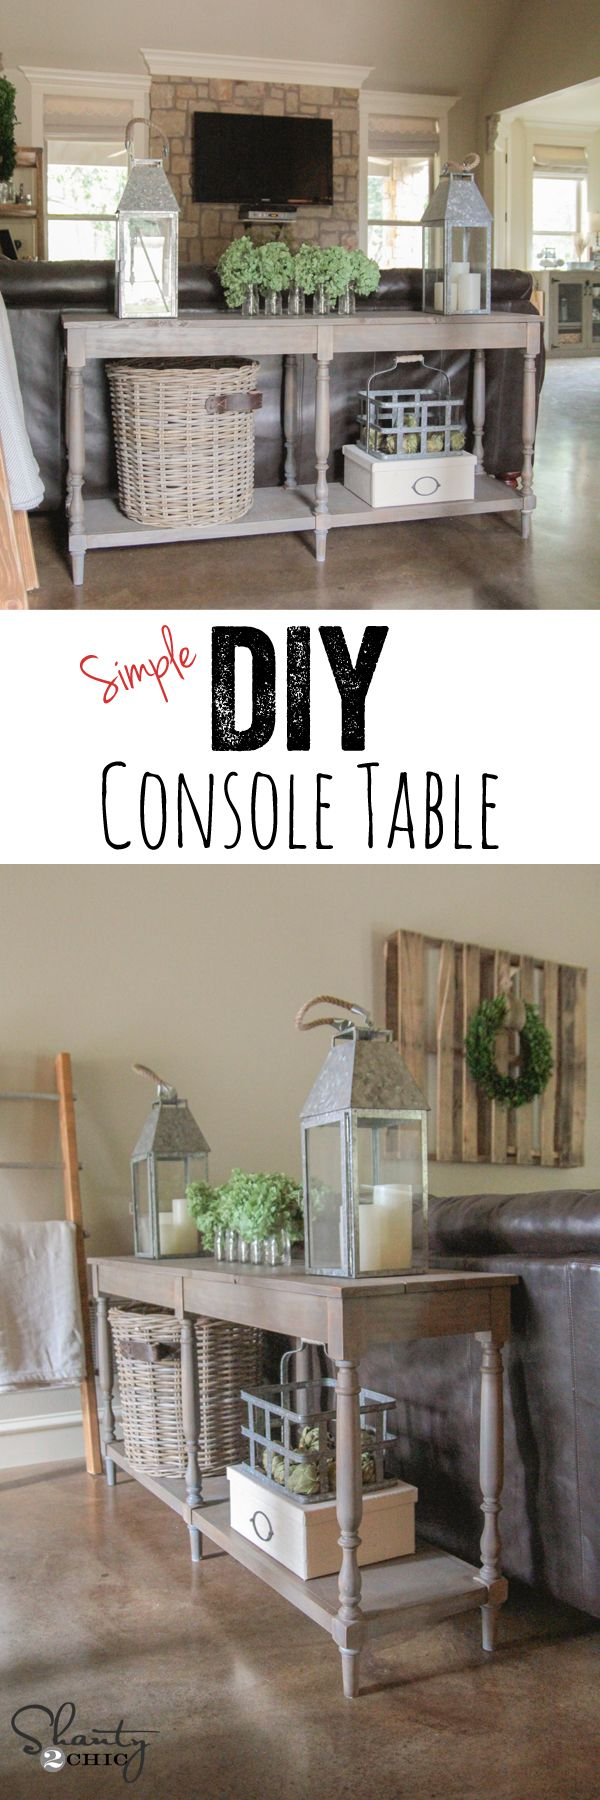 Diy crate console table - Free Woodworking Plans Diy Console Table